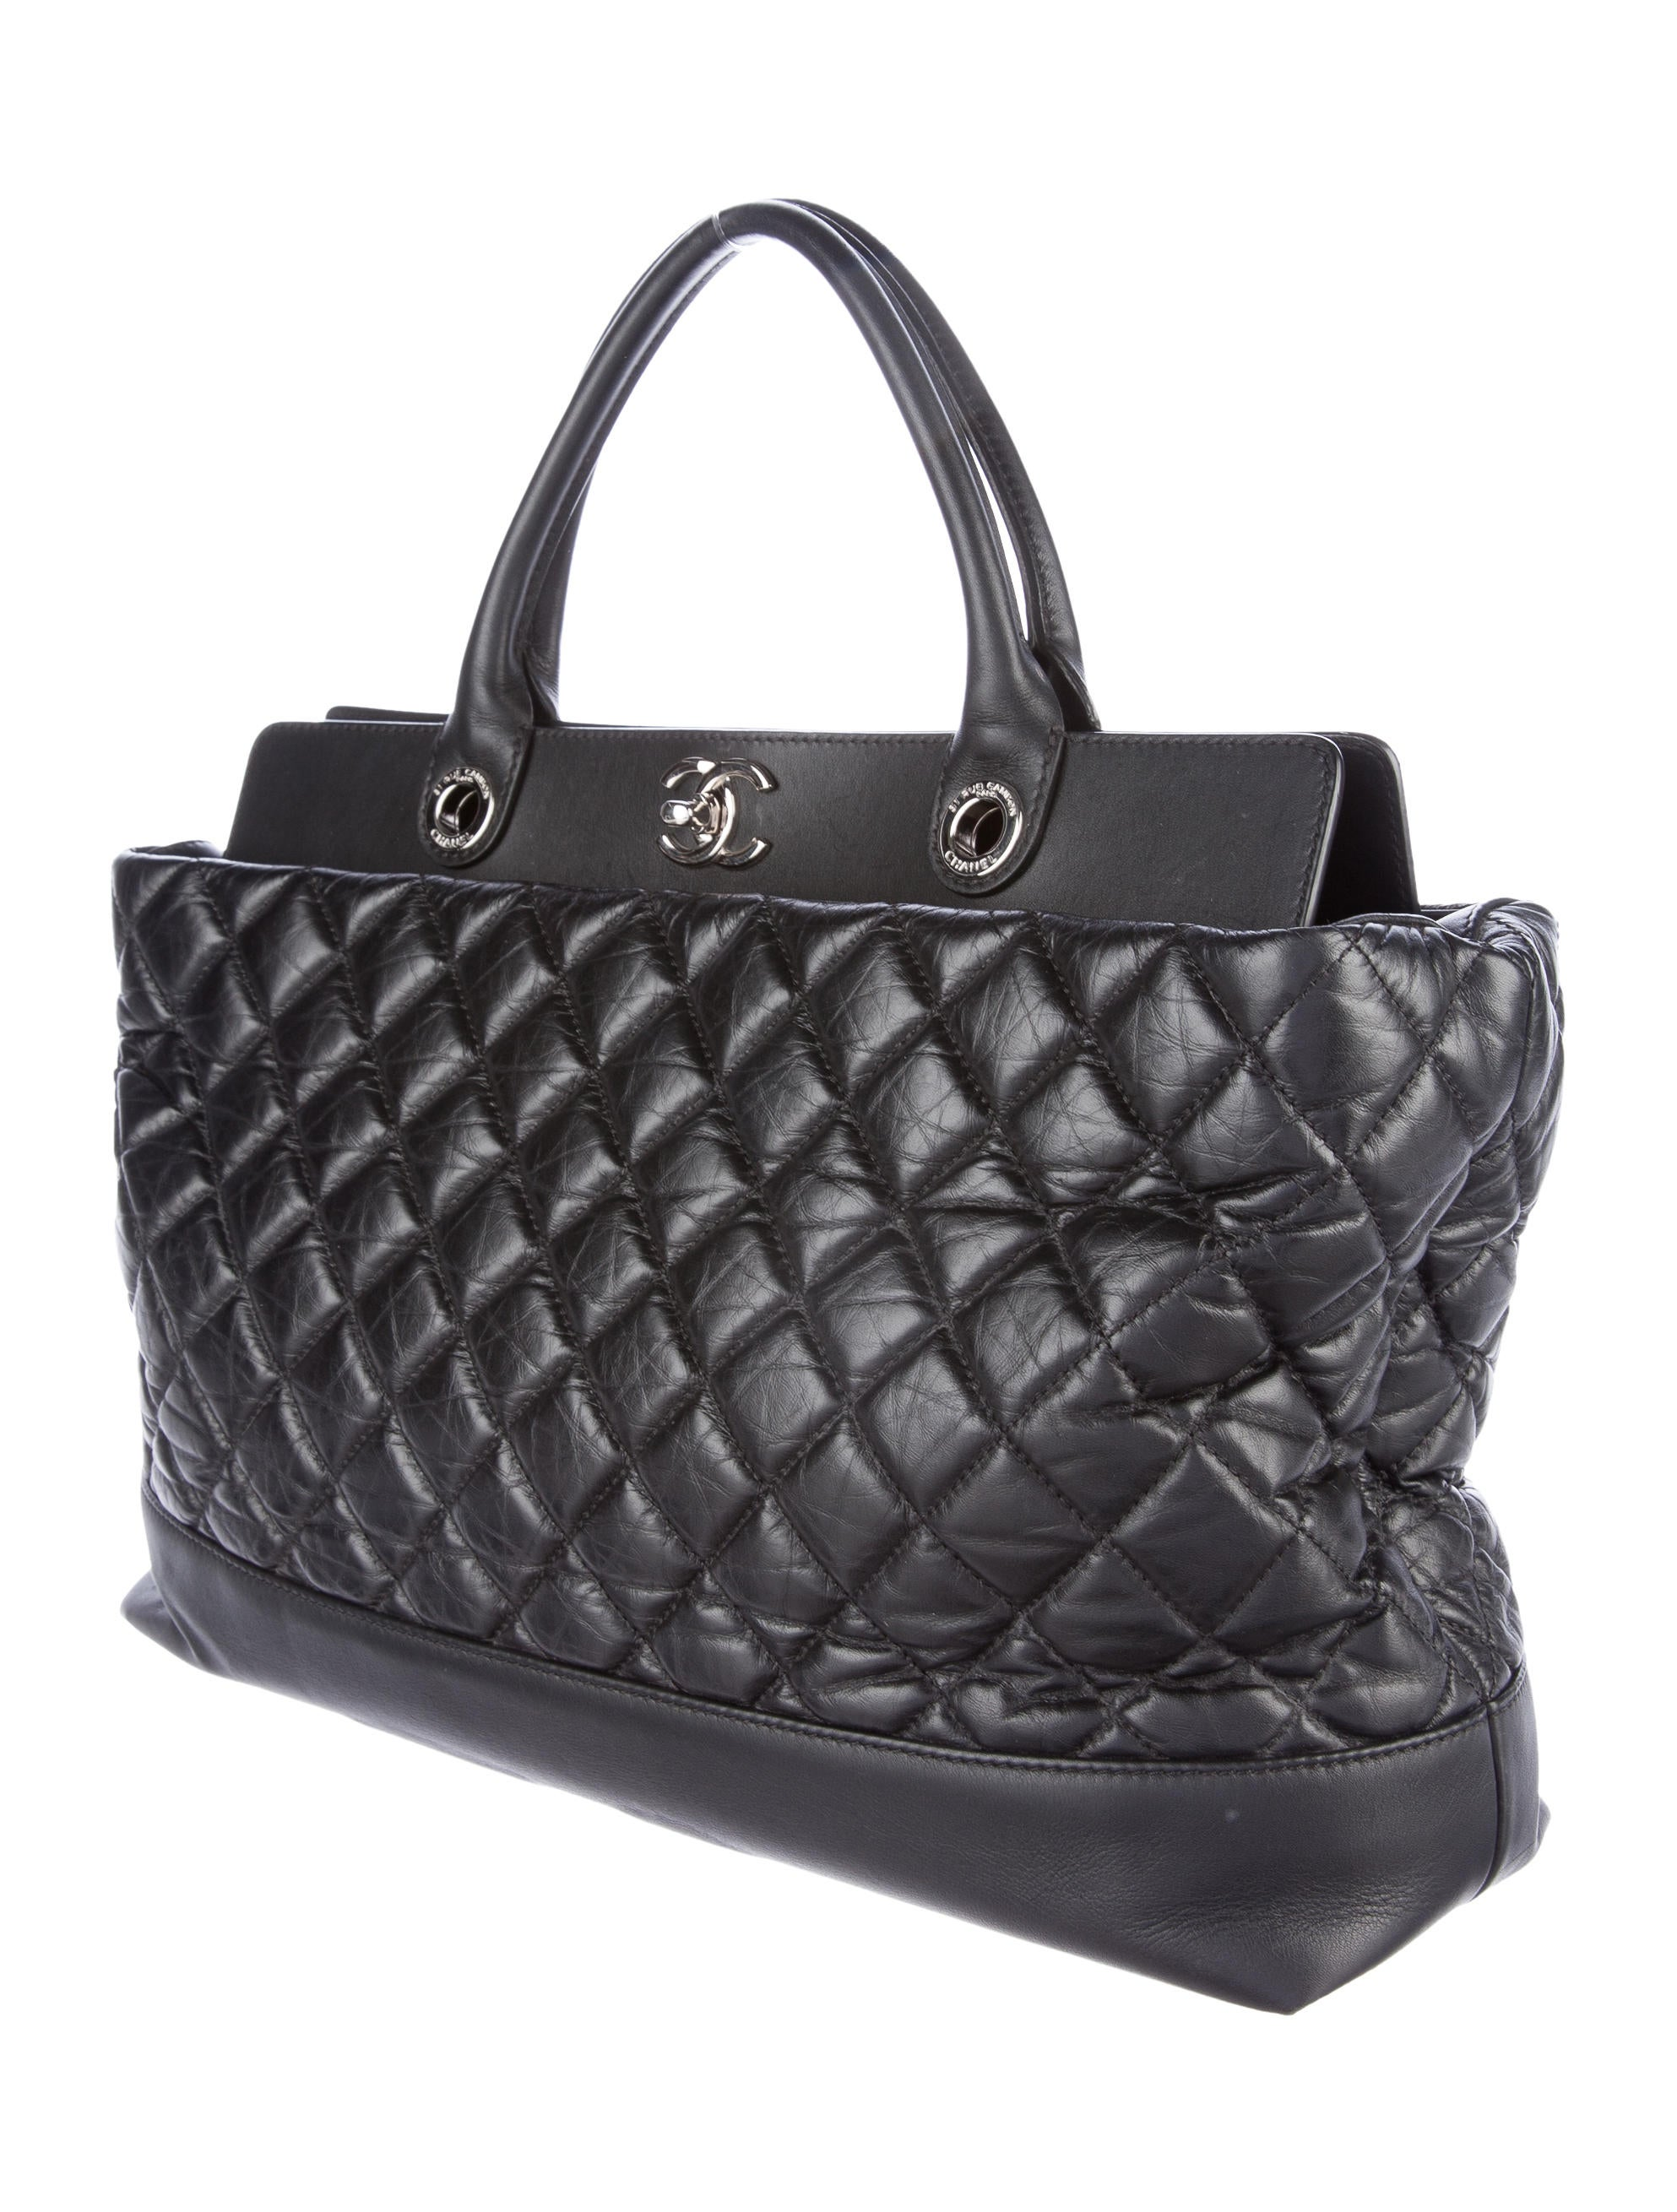 4cde369aaa76 Chanel Quilted Tote Bag In Calfskin - Best Quilt Grafimage.co